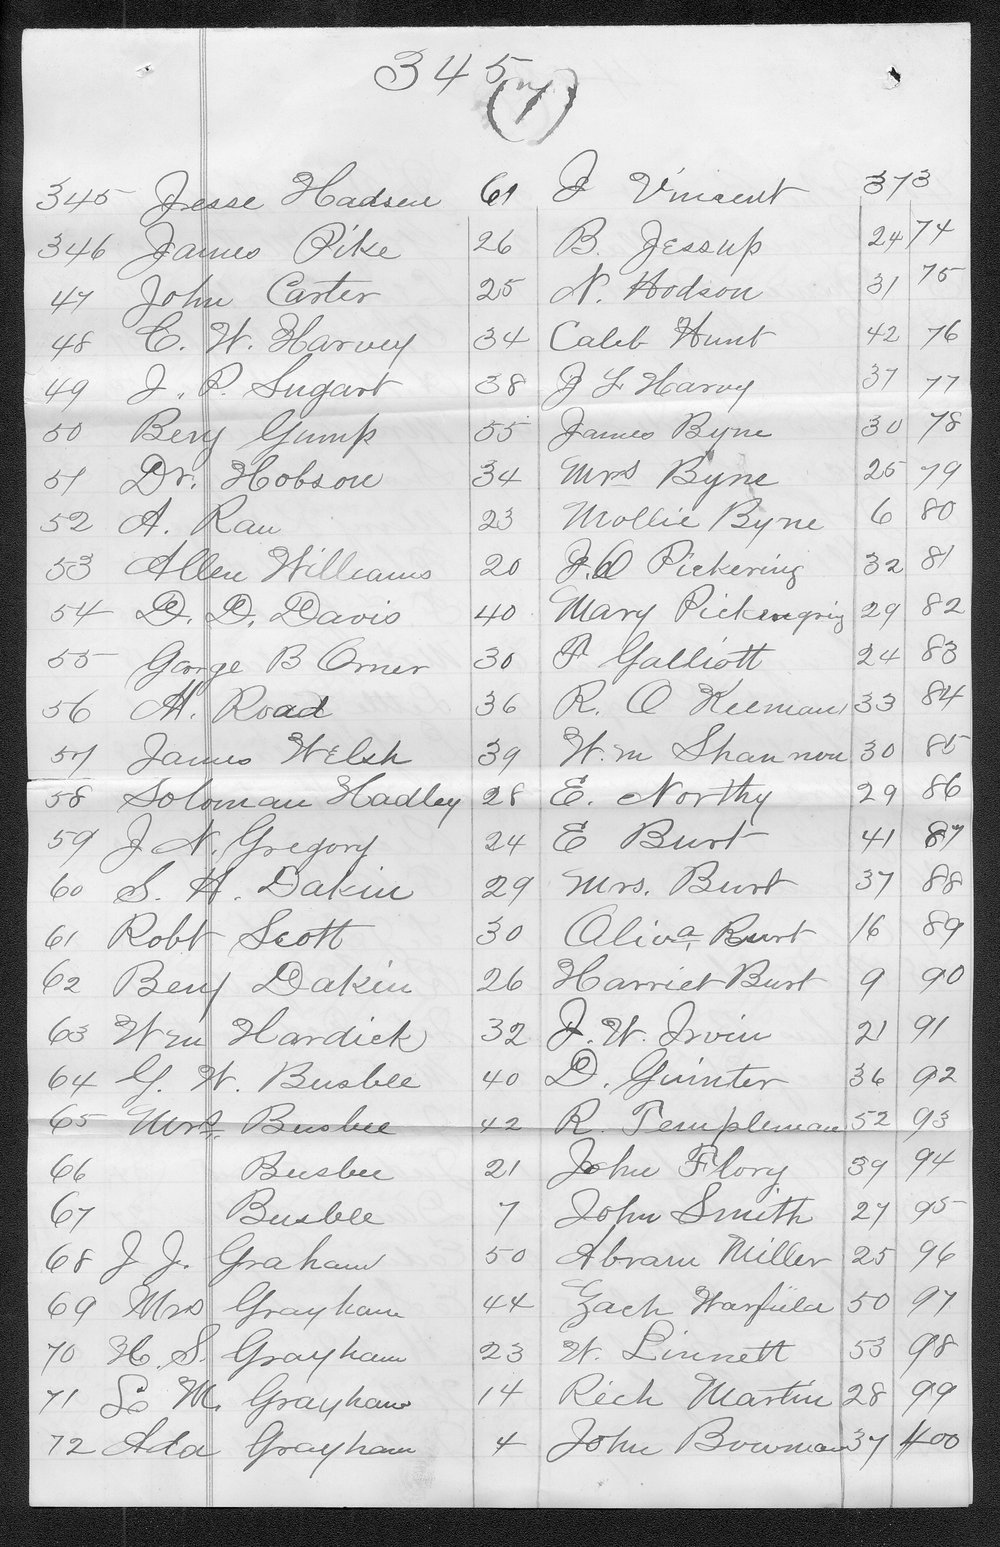 Barber county organization records - 12